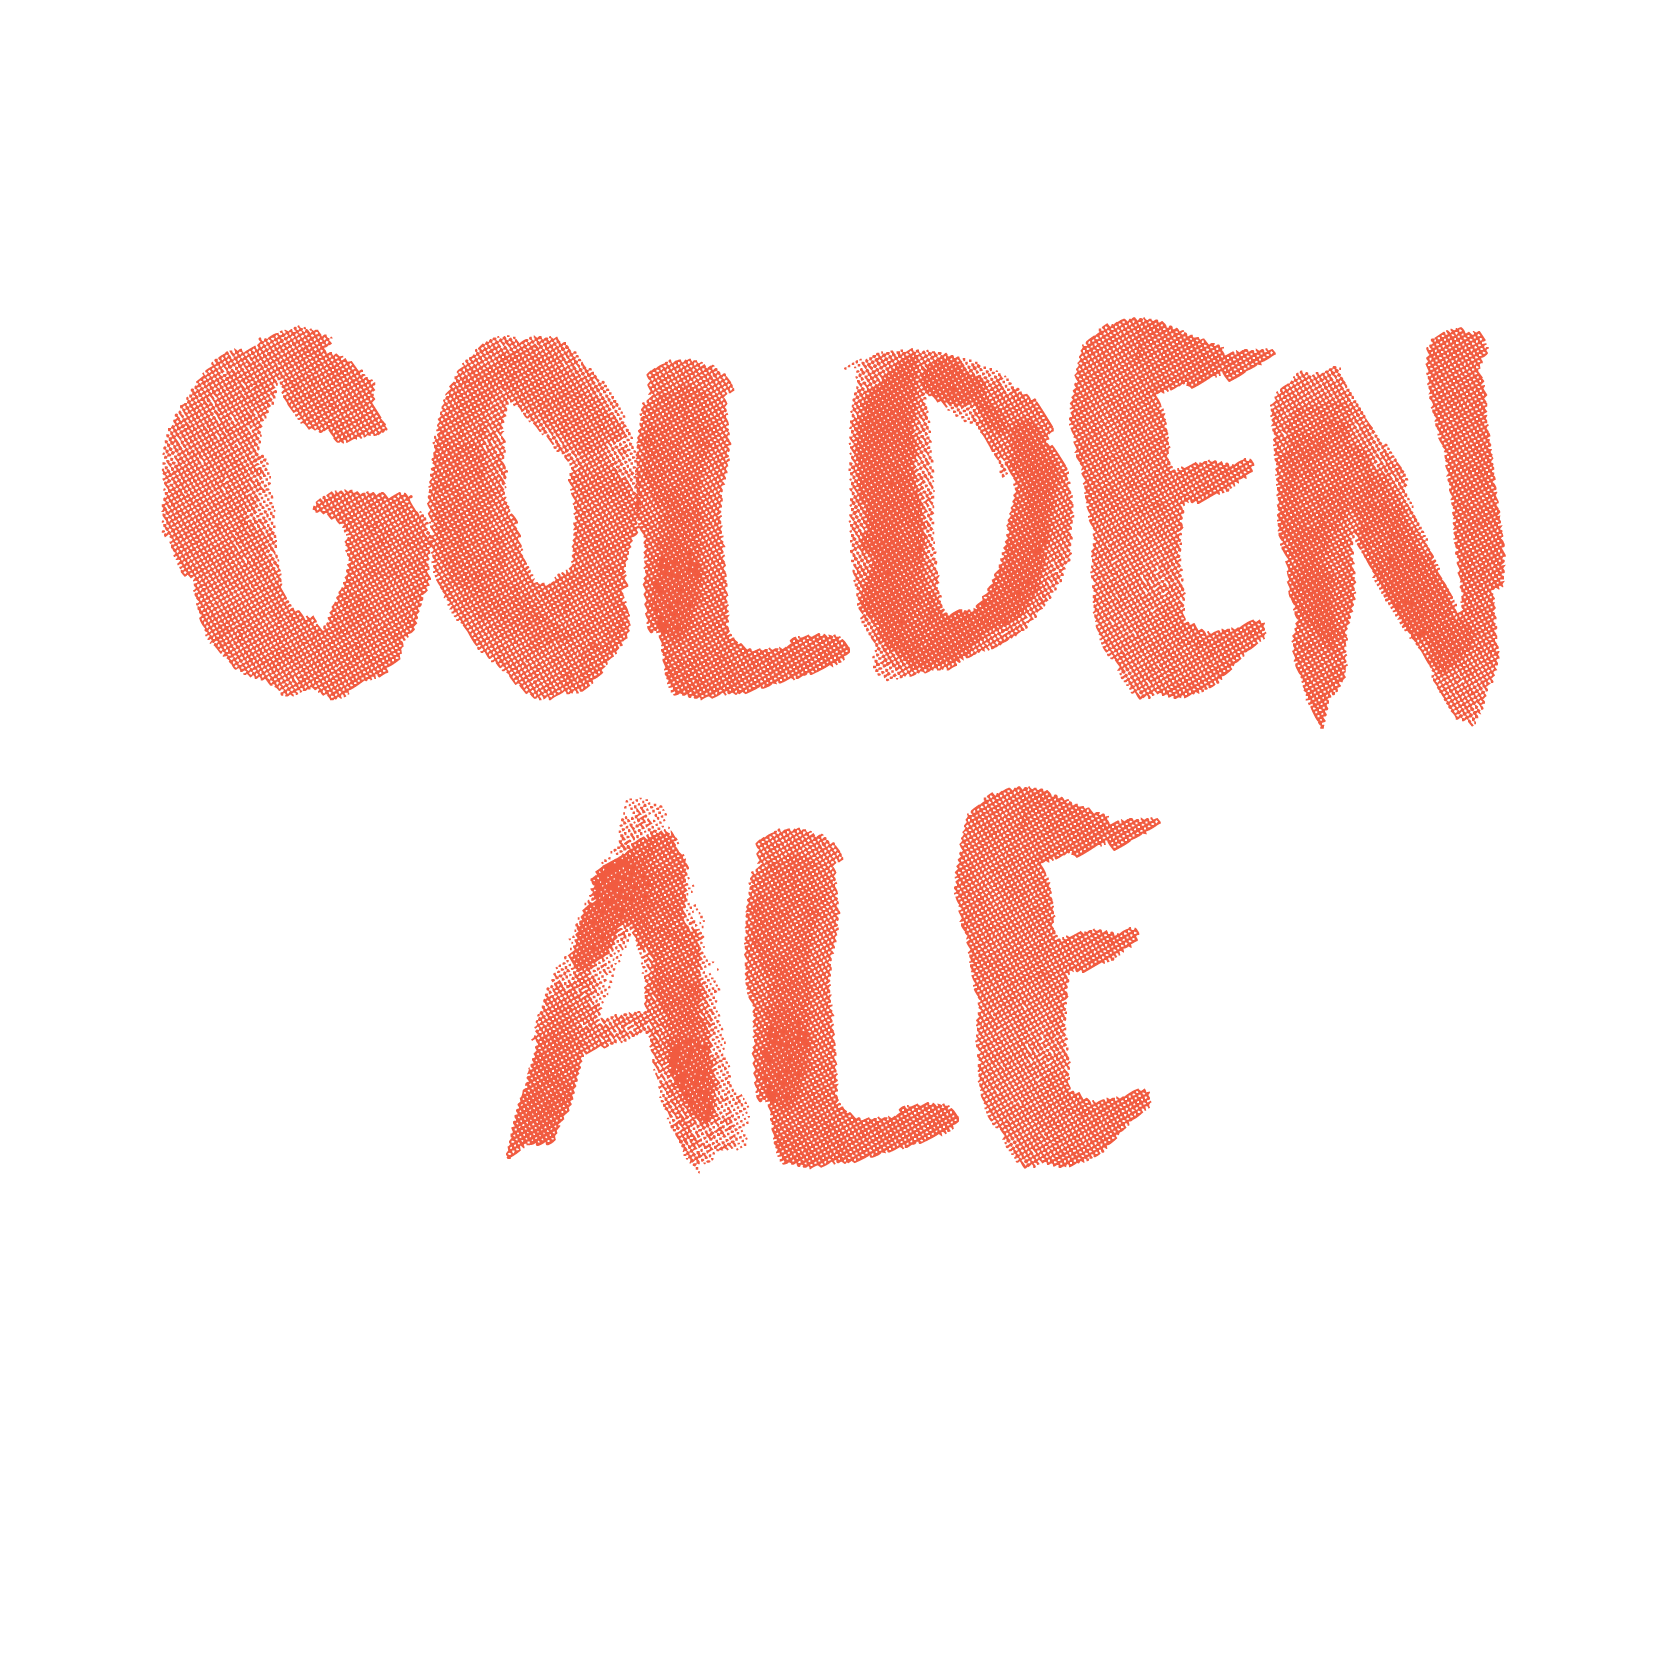 4.8% ABV | 30 IBU | $280     A sessionable Golden Ale has Subtle fruit notes from the Pacifica hop with the use of English ale yeast.